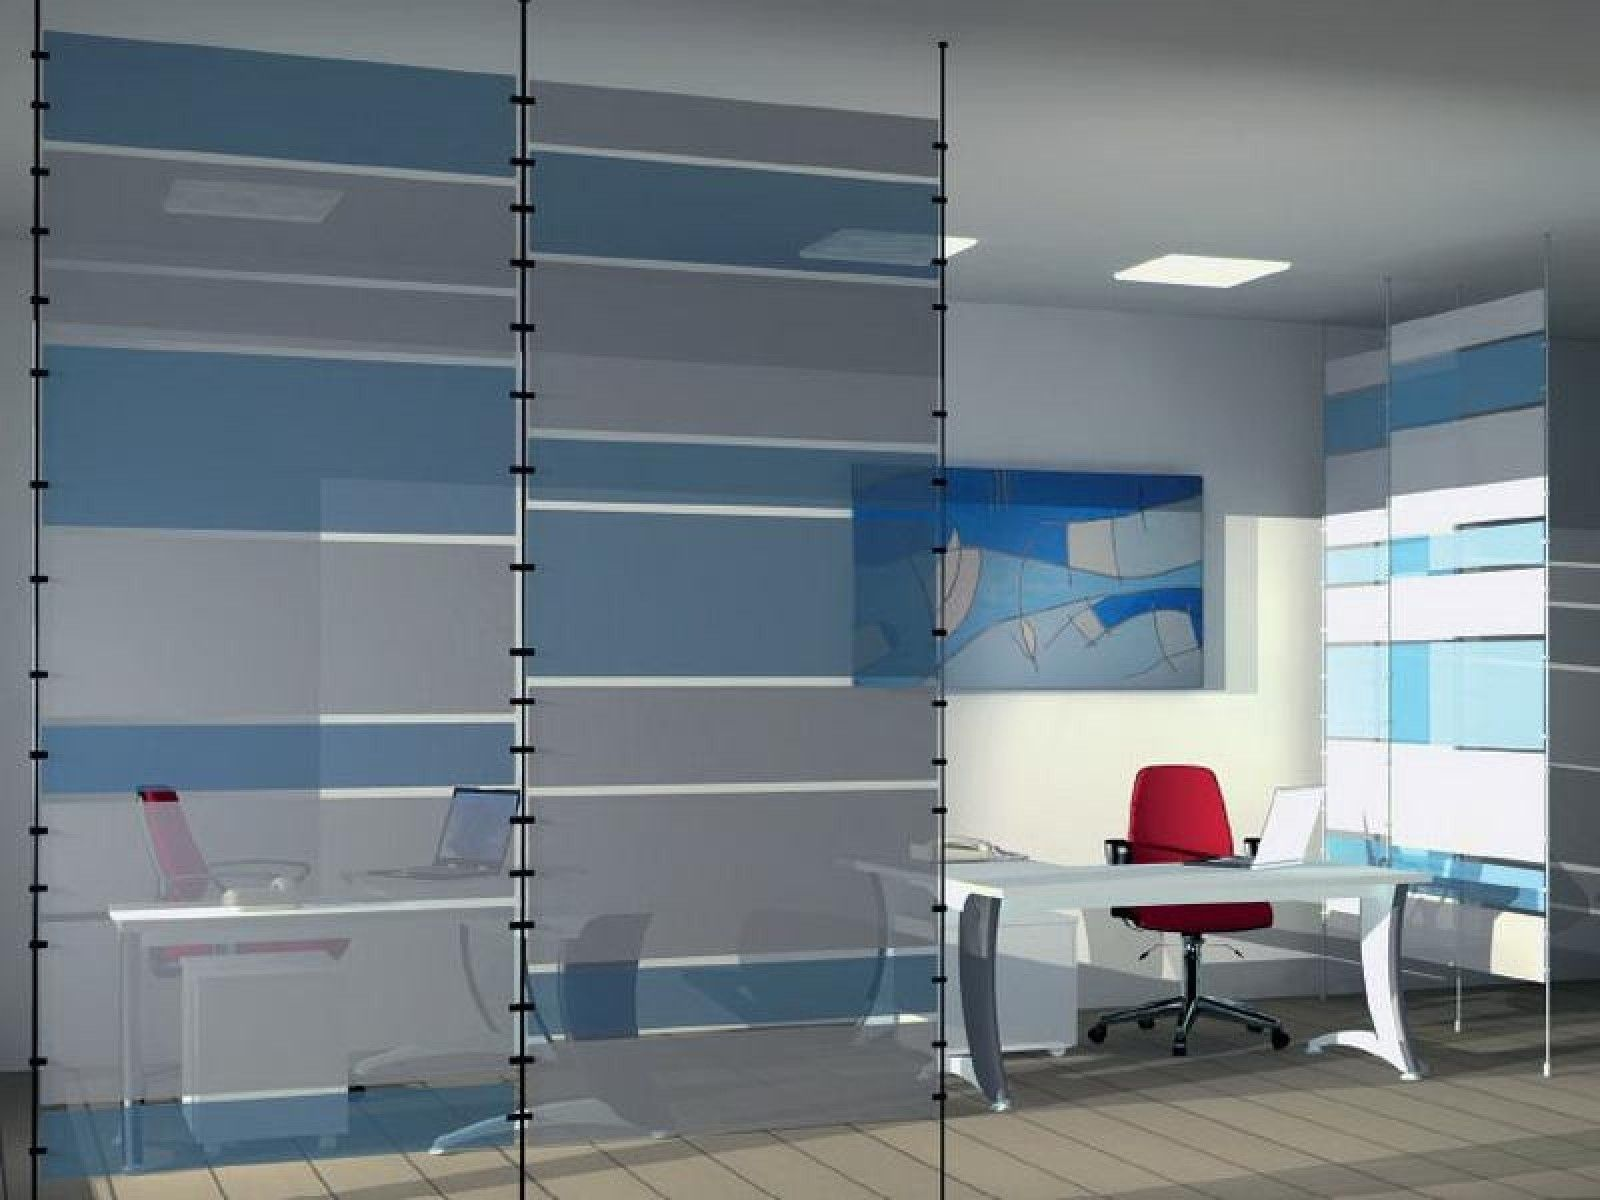 hanging create room or divide with to privacy your hide dividers our kits space divider minutes innovative clutter pin everything rooms roommate and bedrooms come up needed in